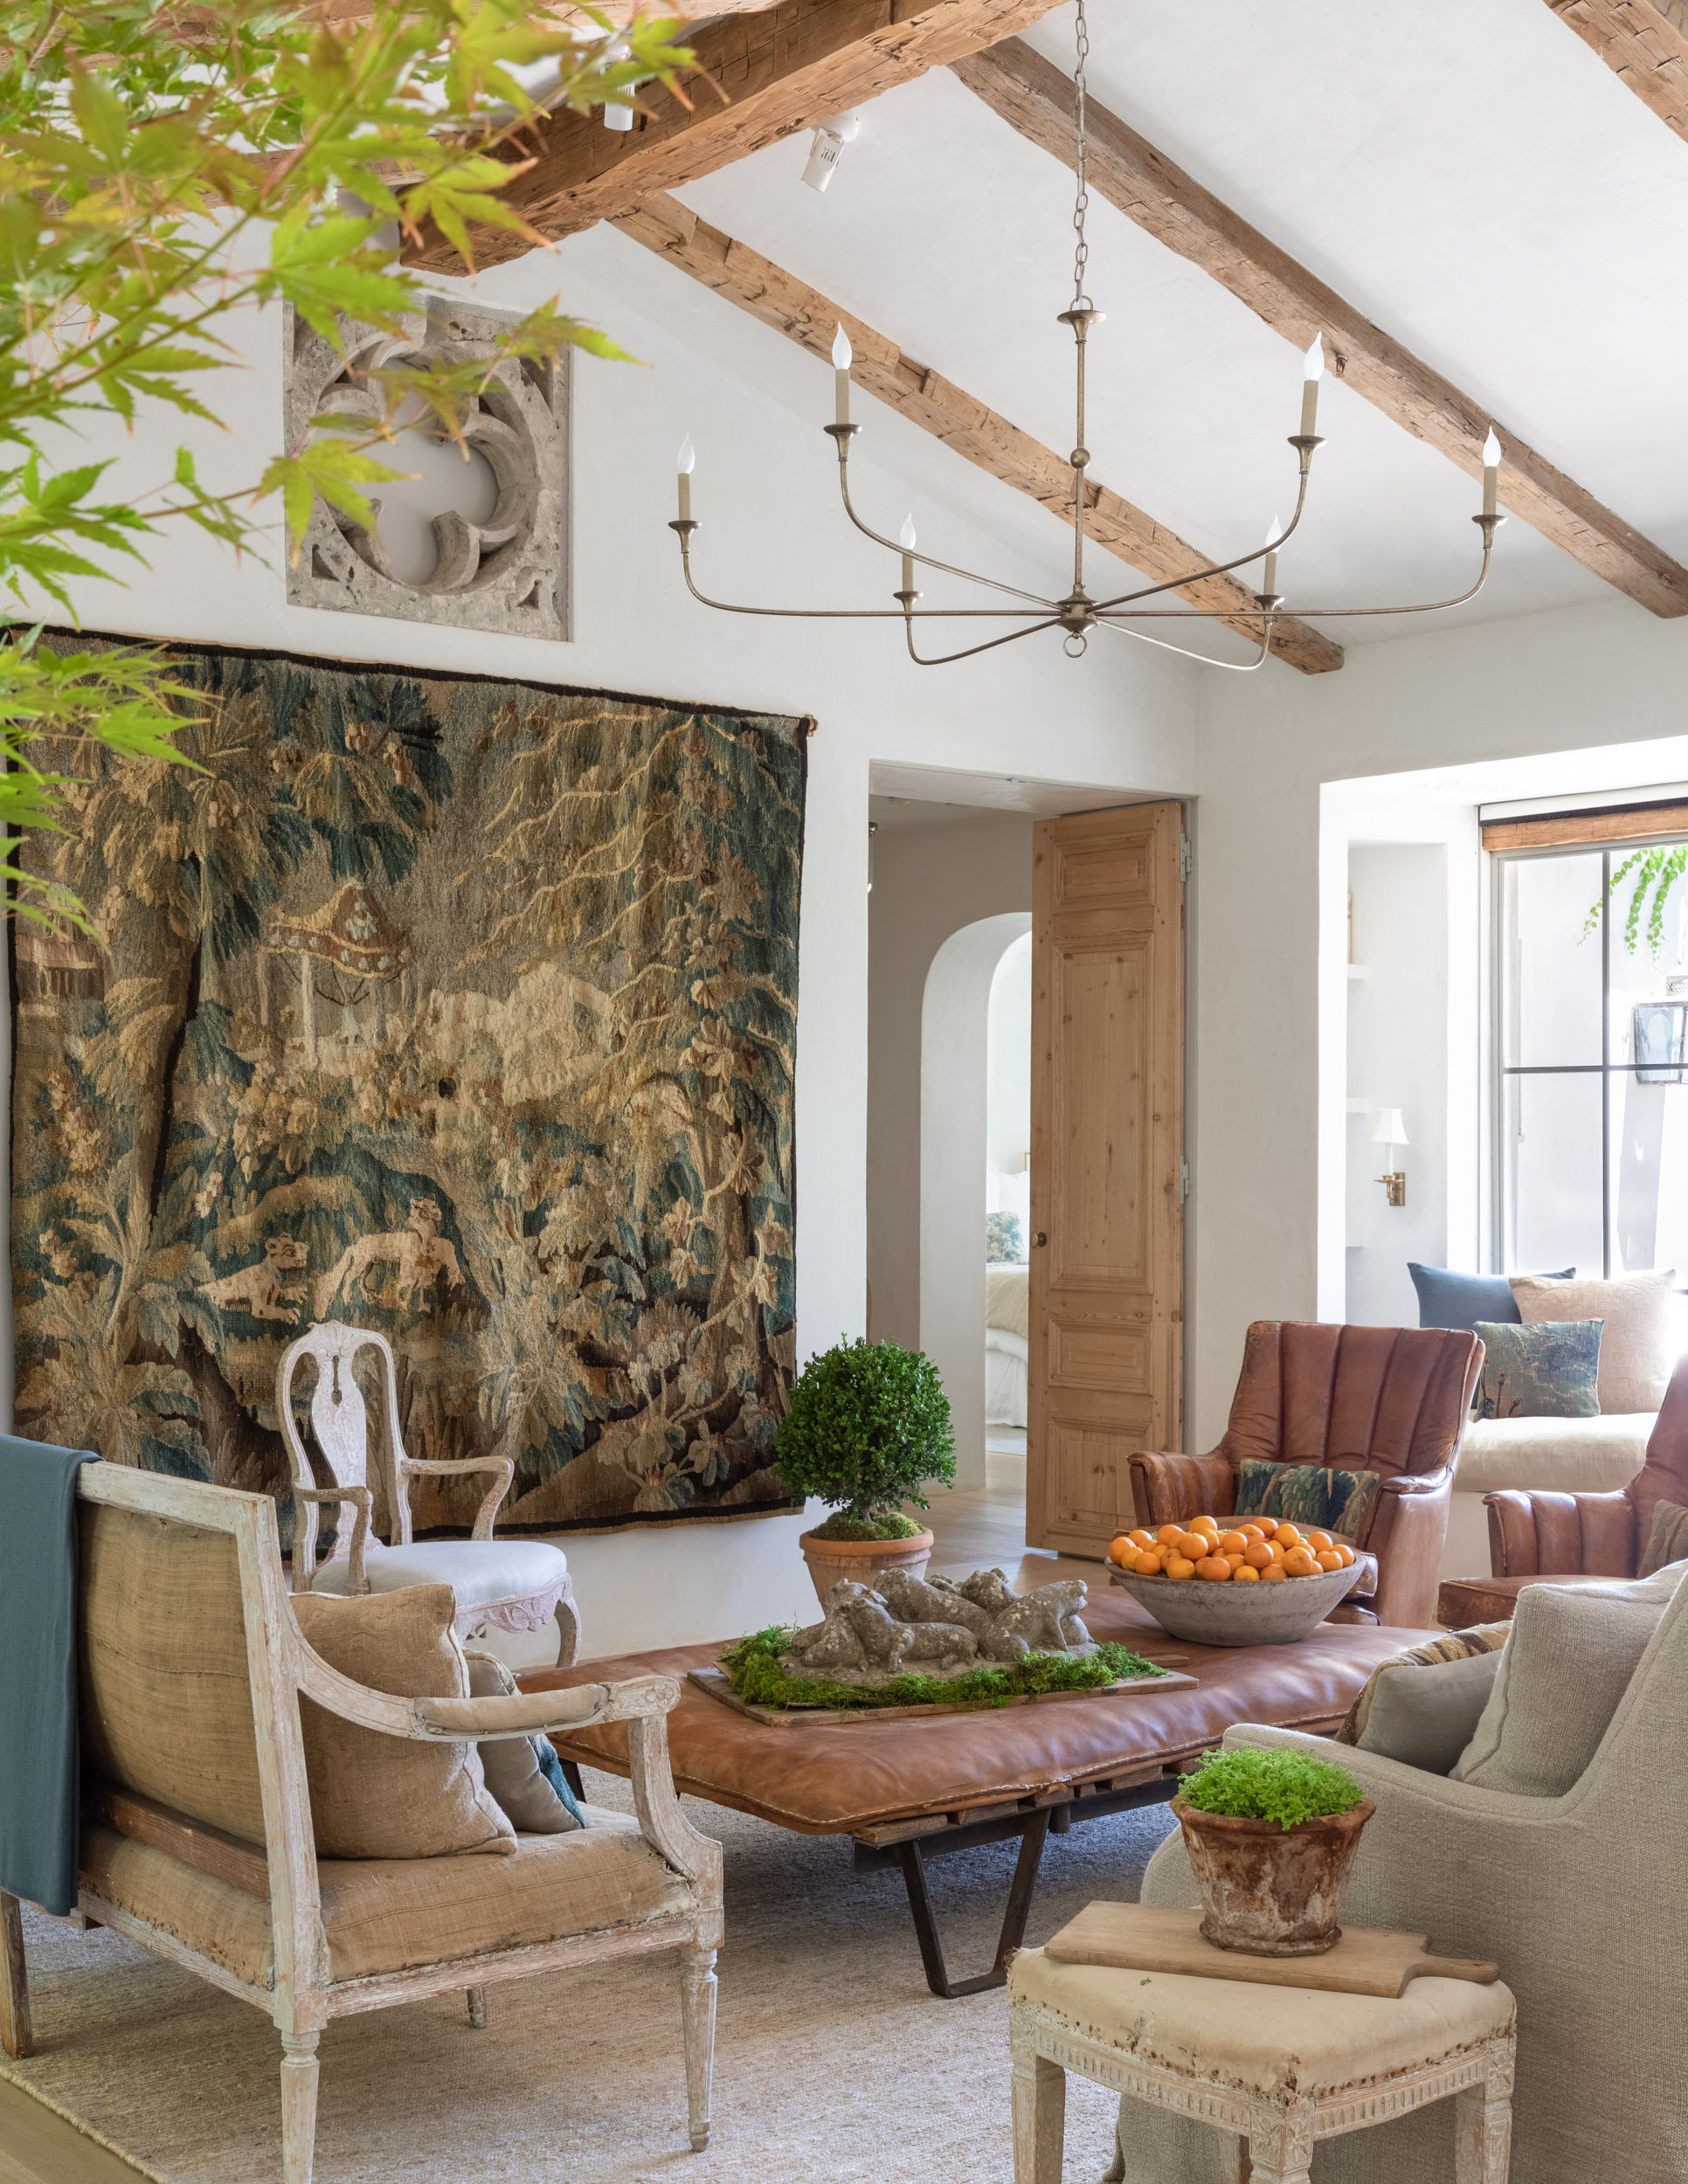 The Design Trends That Are IN and OUT in 12 - What Decorating